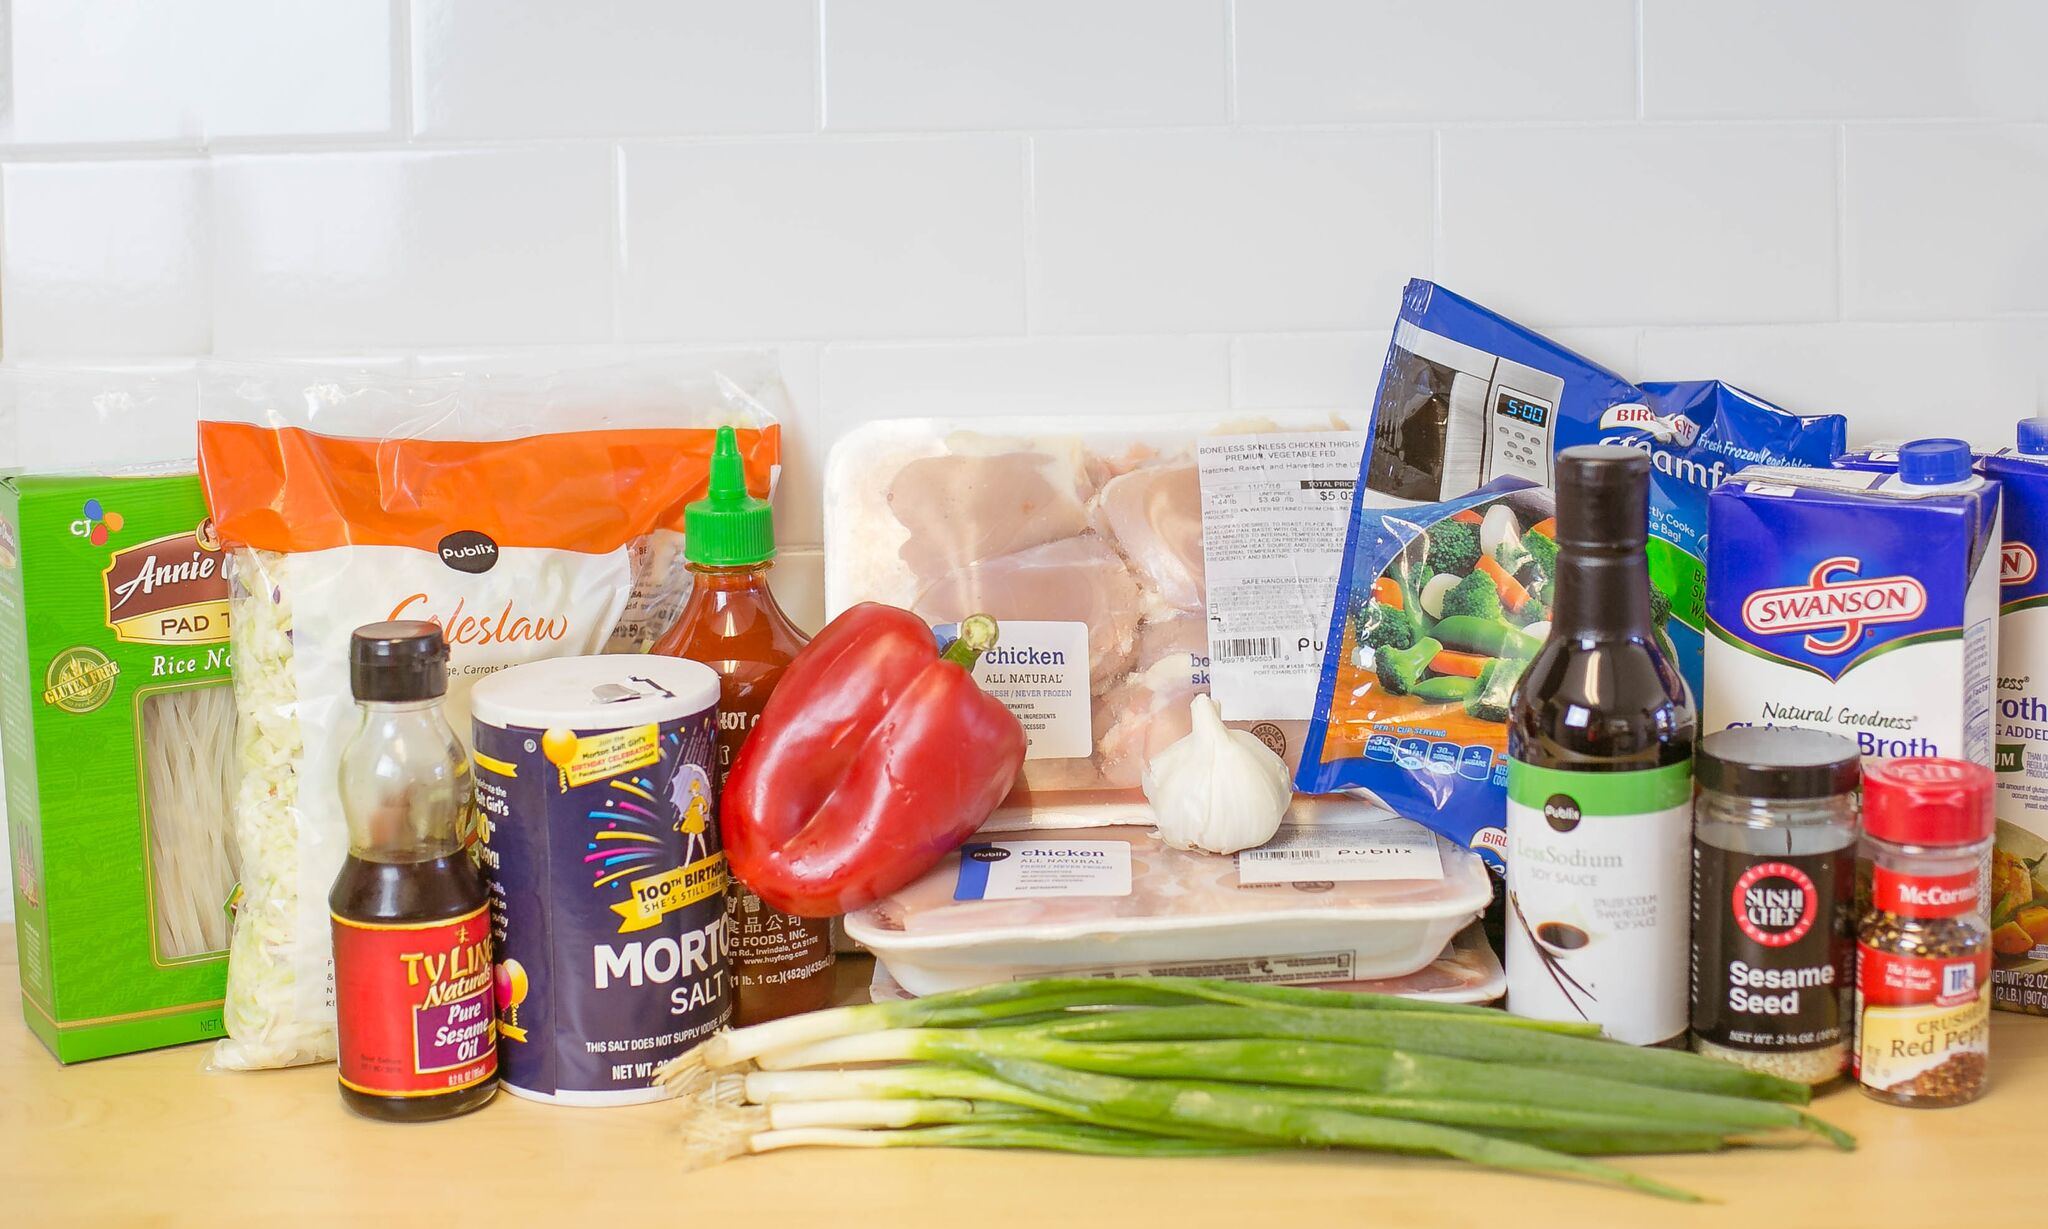 Assemble your ingredients: Chicken thighs, frozen vegetables, soy sauce, garlic, green onions, red bell pepper, chicken stock, rice noodles, shredded slaw mix, sesame seeds, spicy sauce, sesame oil, red pepper flakes and sriracha sauce.